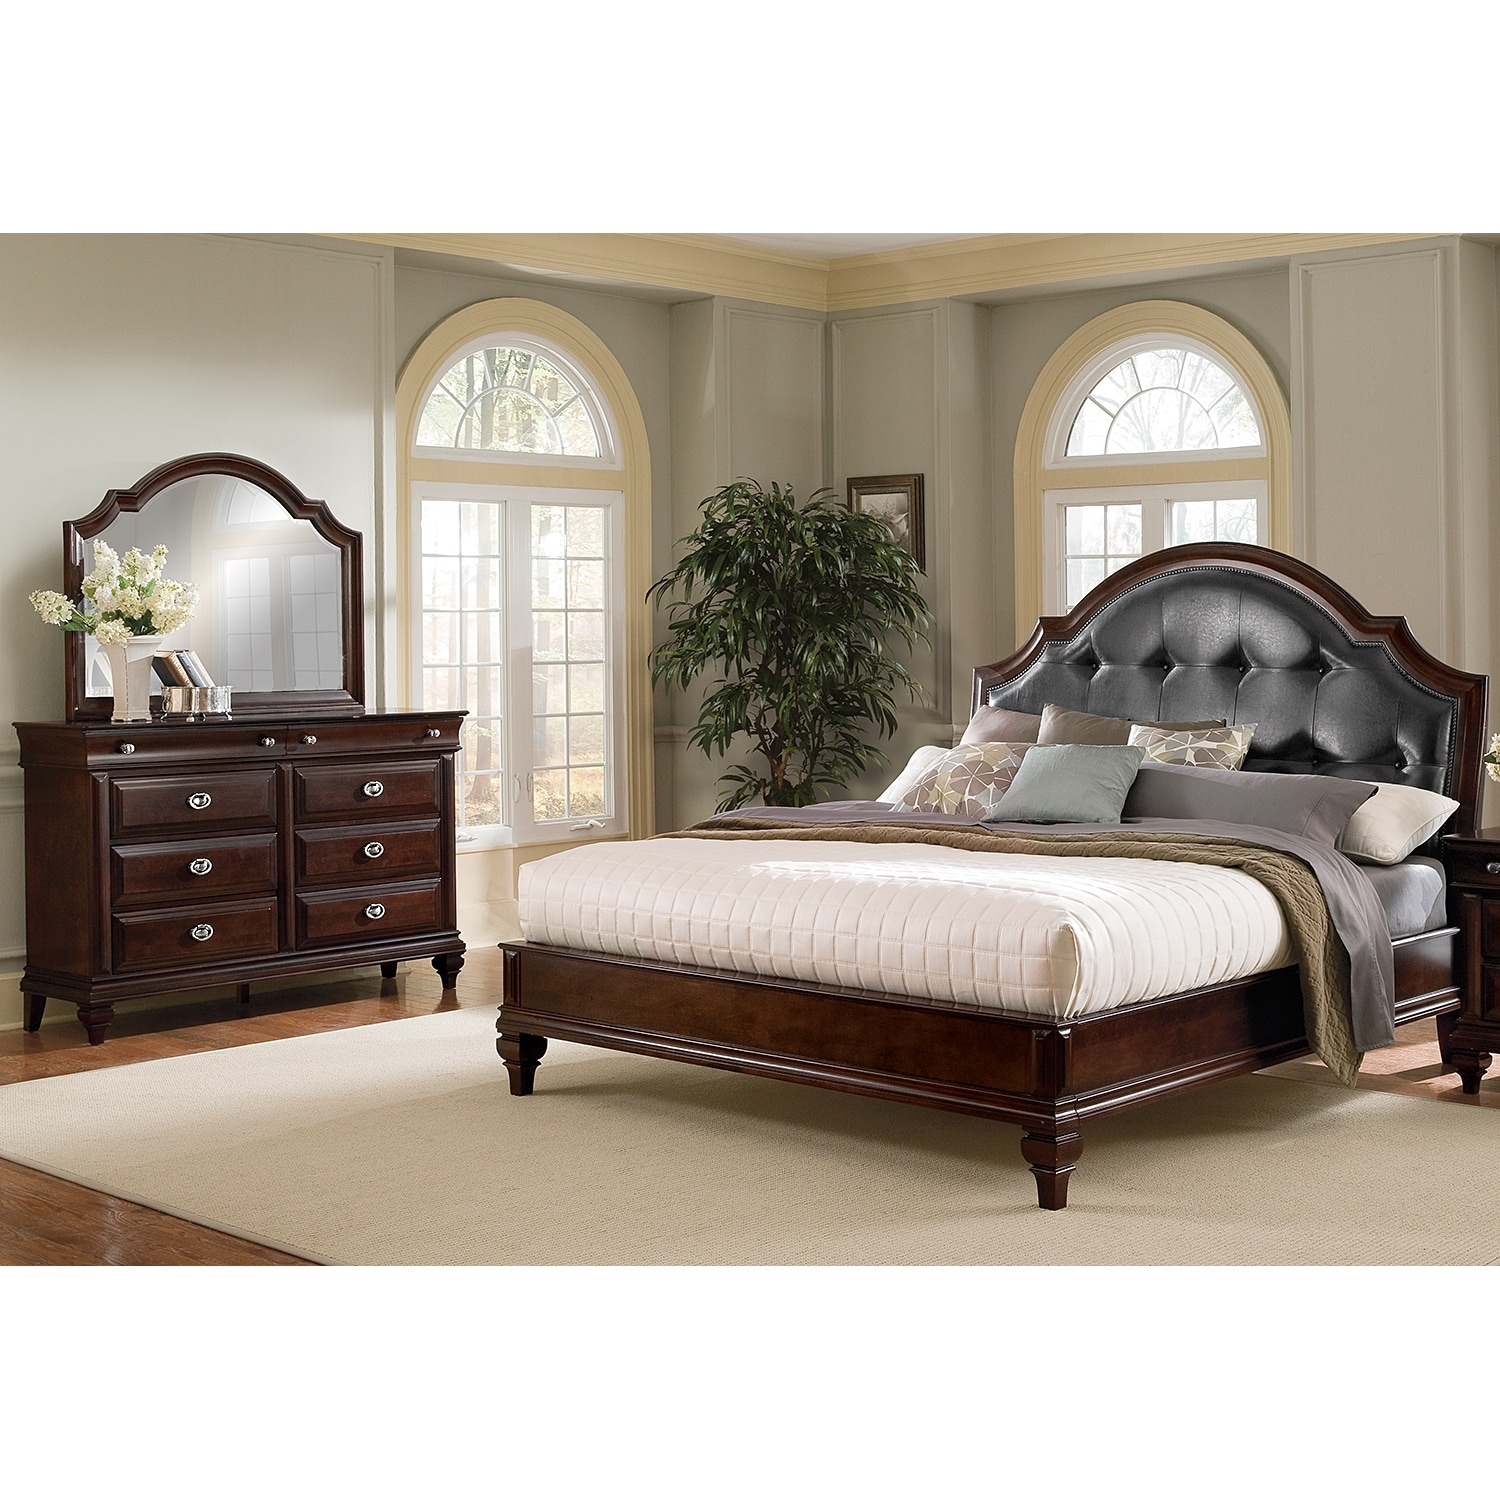 Was 1 299 98 Today 1 169 98 Manhattan 5 Piece King Bedroom Set Cherry By Pulaski